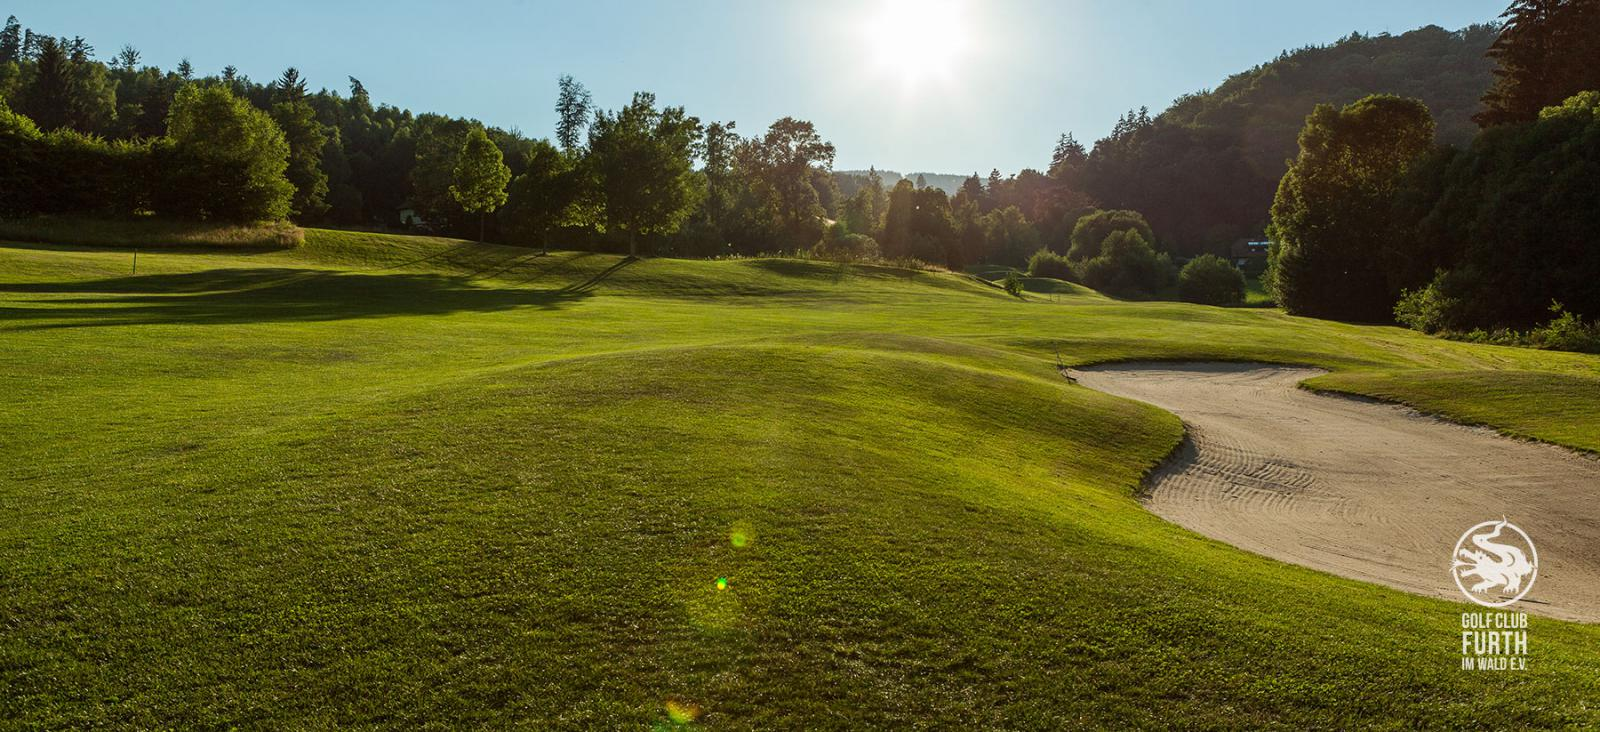 Golf-Club Furth im Wald e.V. (Lam)